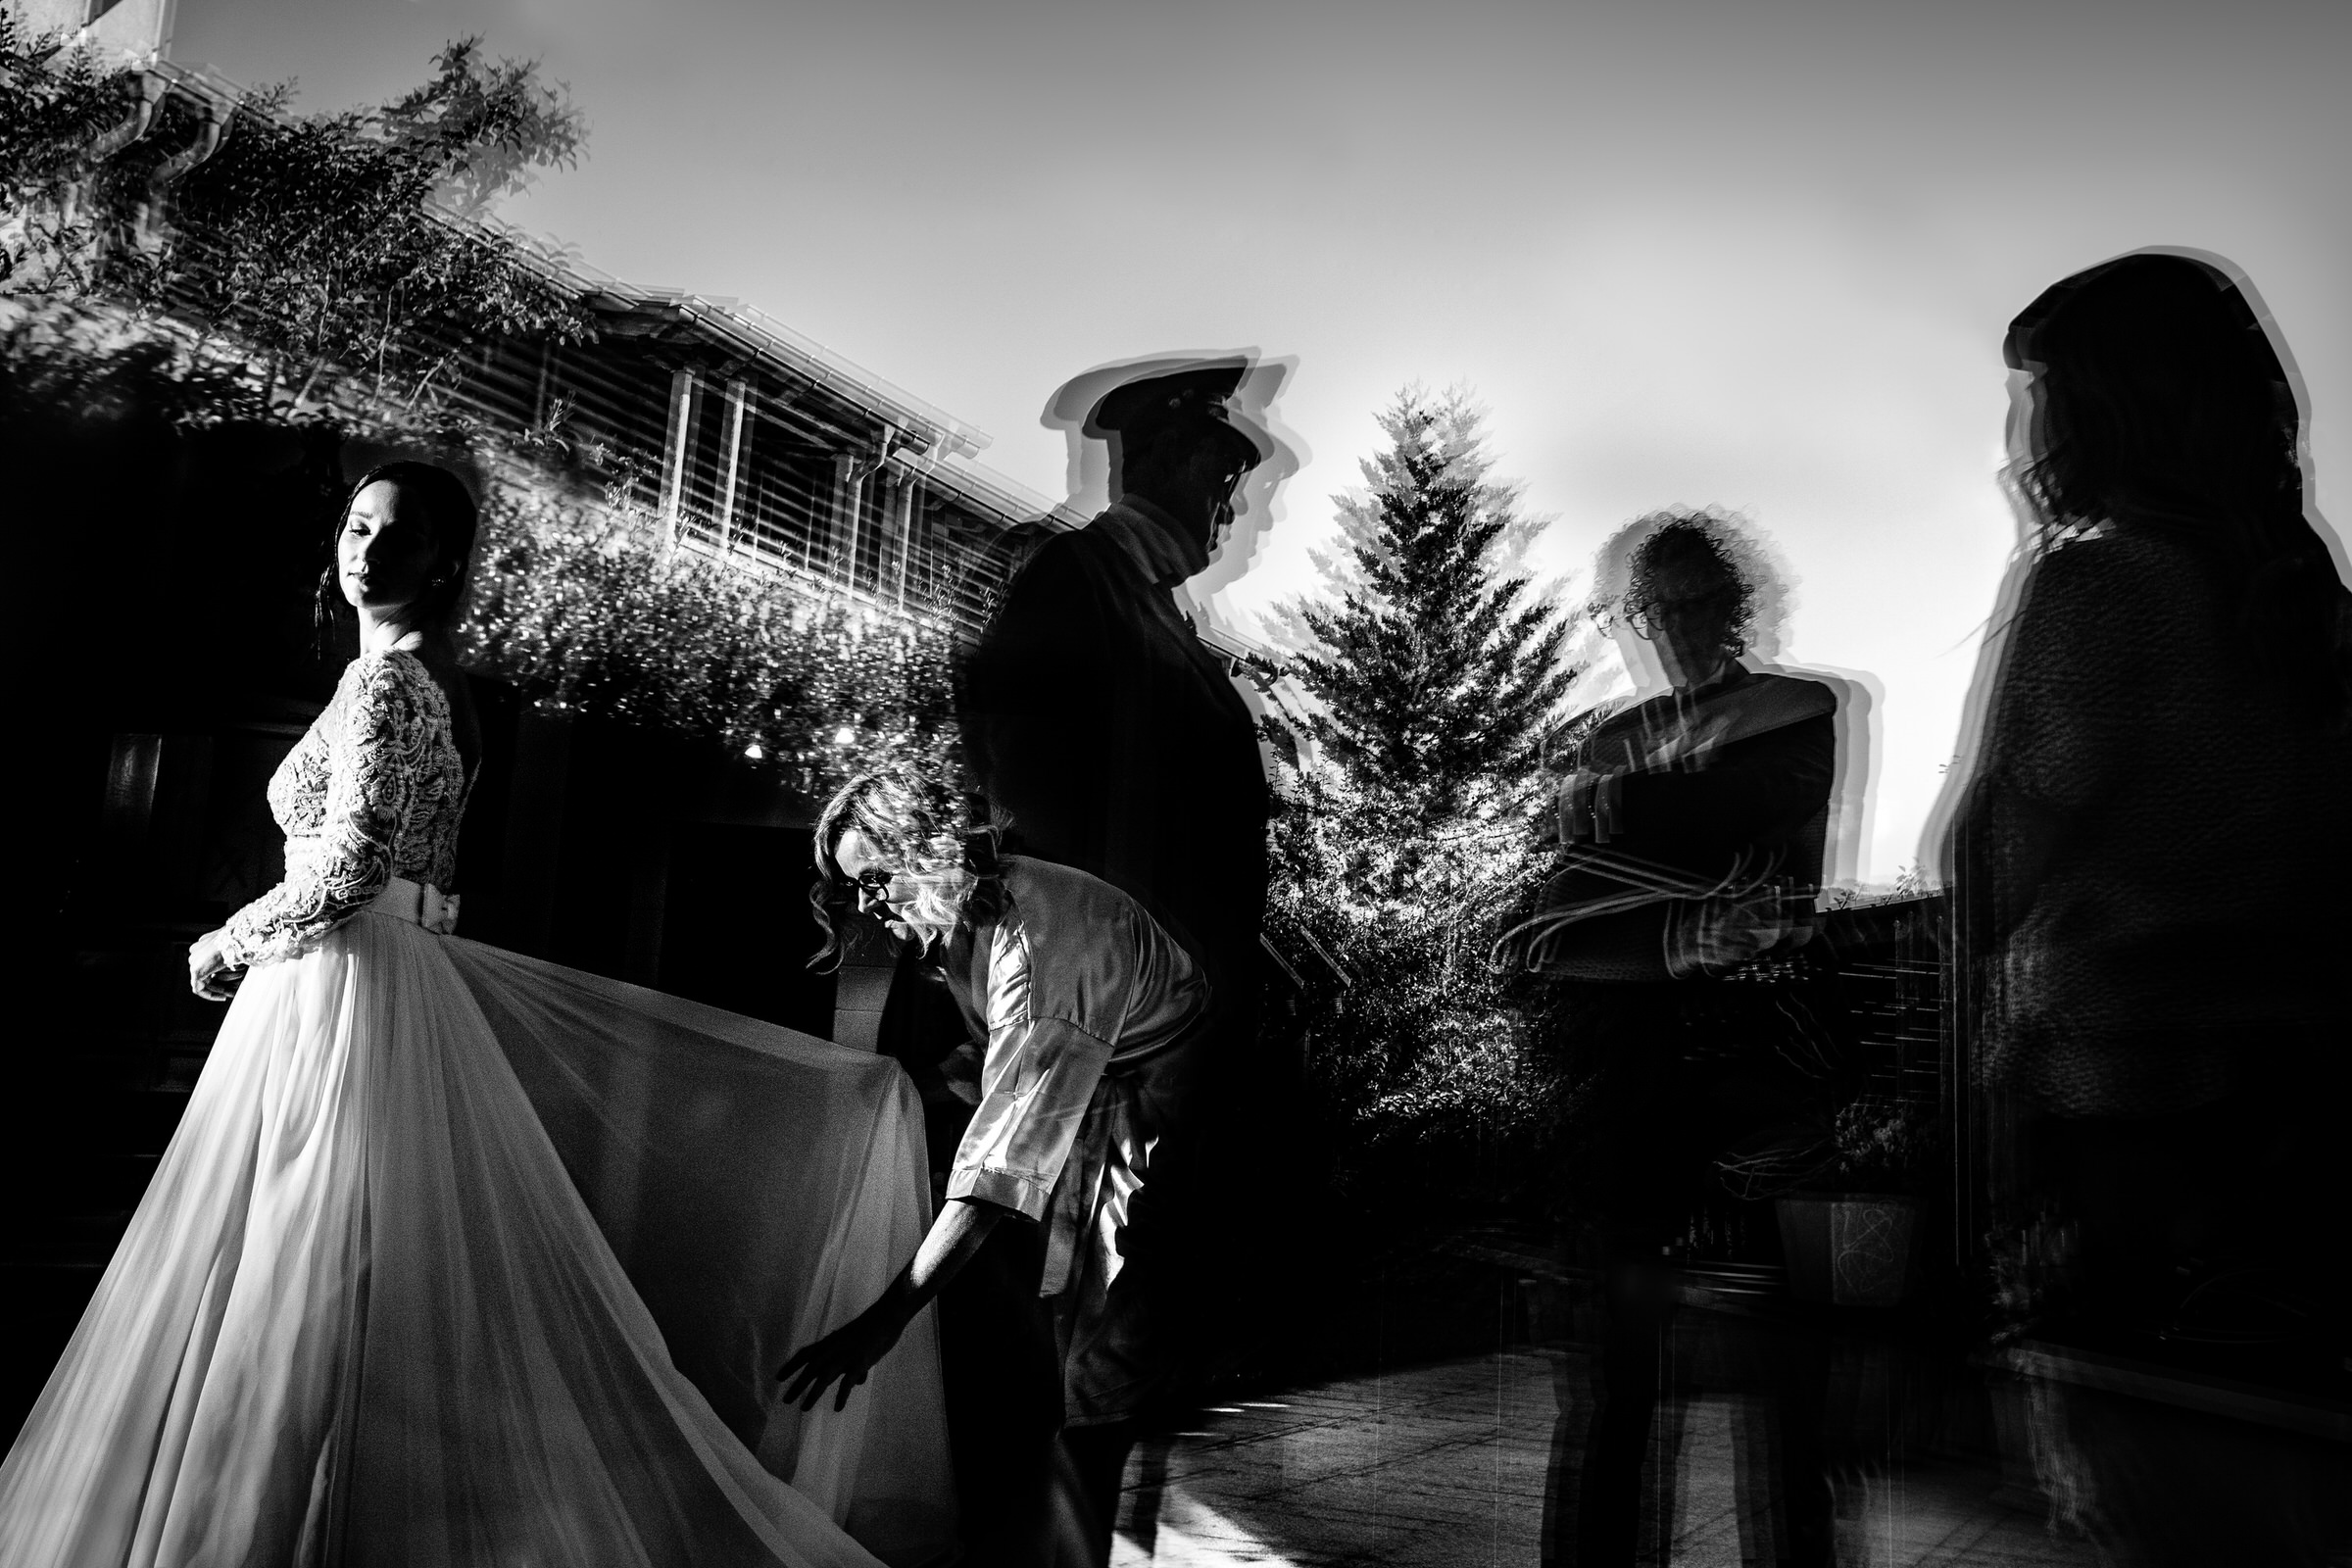 Bride with attendant and blurred others - photo by Luca + Marta Gallizio Photography